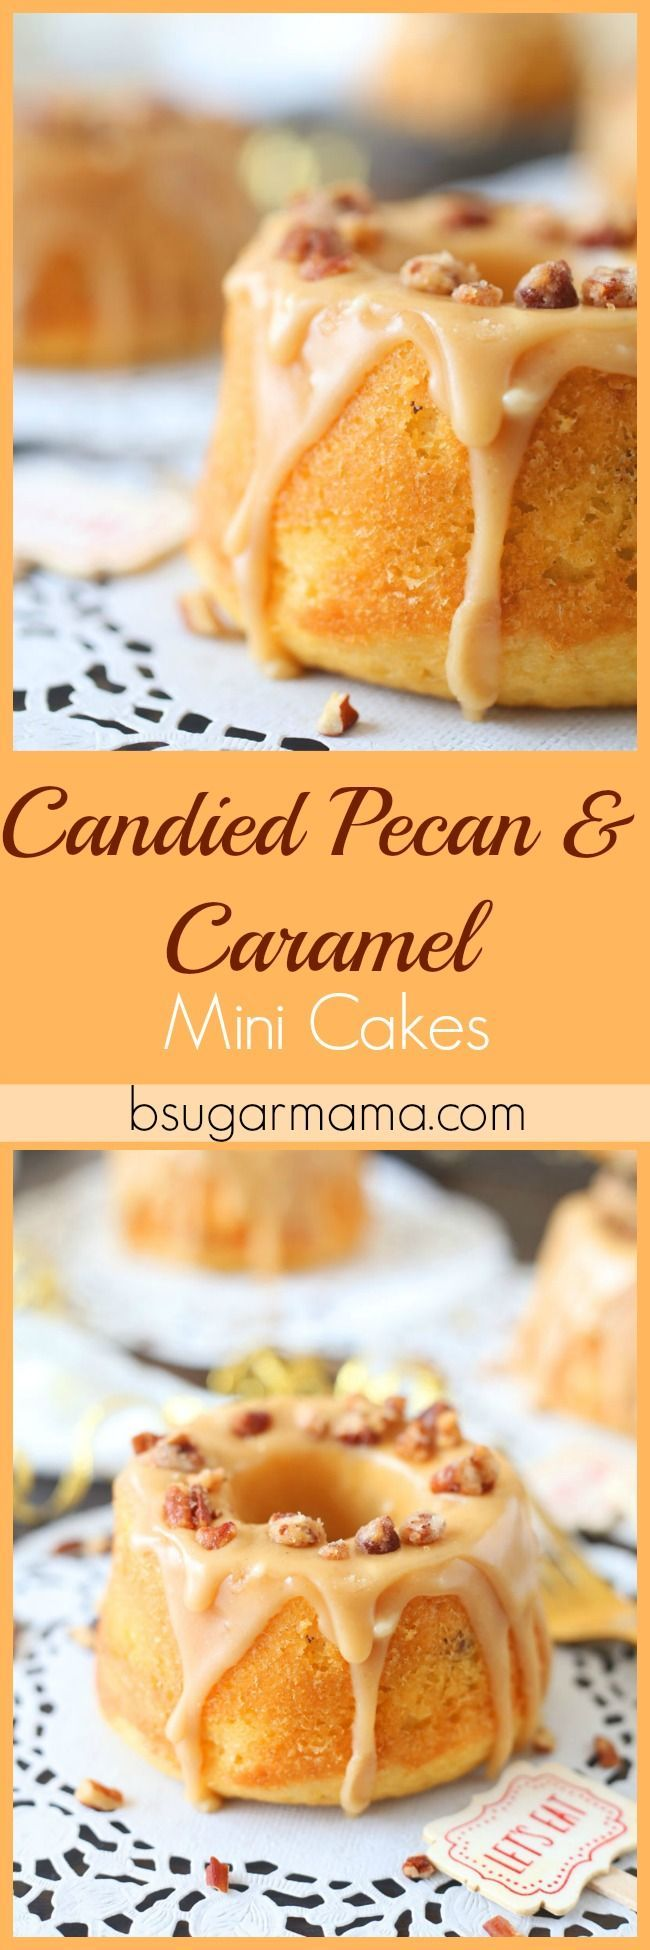 Enjoy these Candied Pecan and Caramel Mini Cakes for any occasion! These mini cakes are perfect to serve as mini desserts. Topped with a caramel glaze and candied pecans, what's not to love!